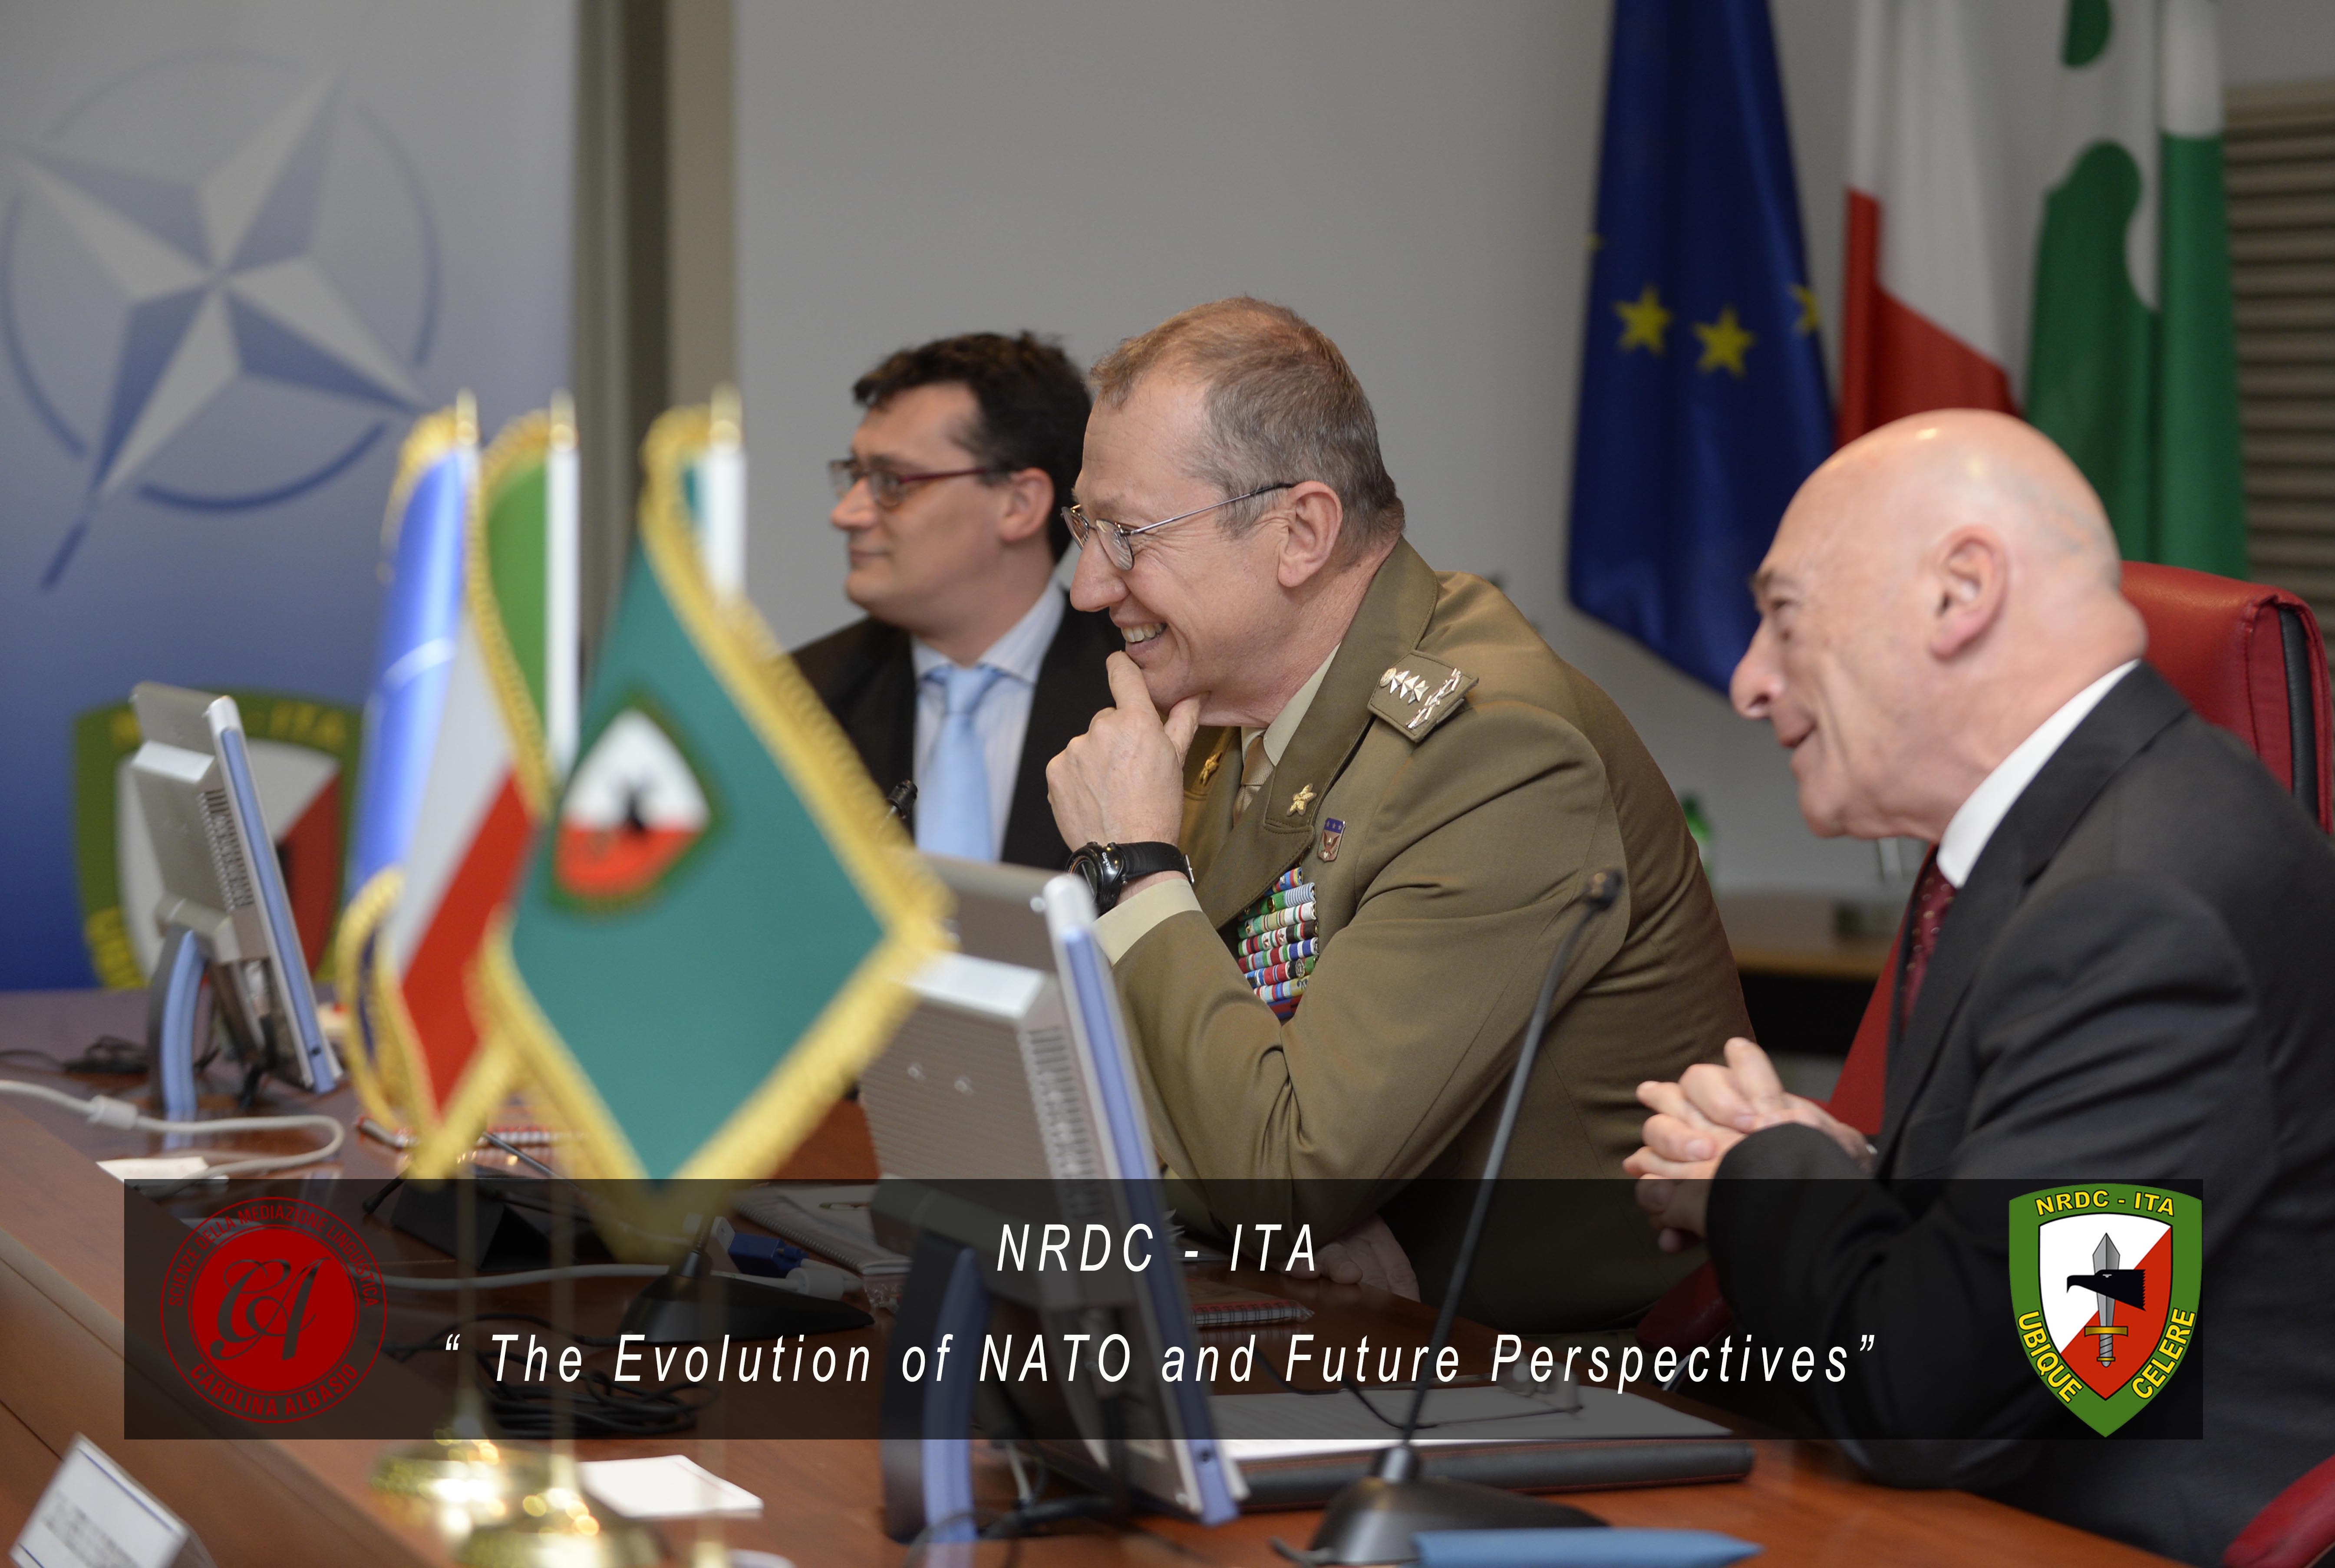 8th February - The evolution of NATO and future perspectives